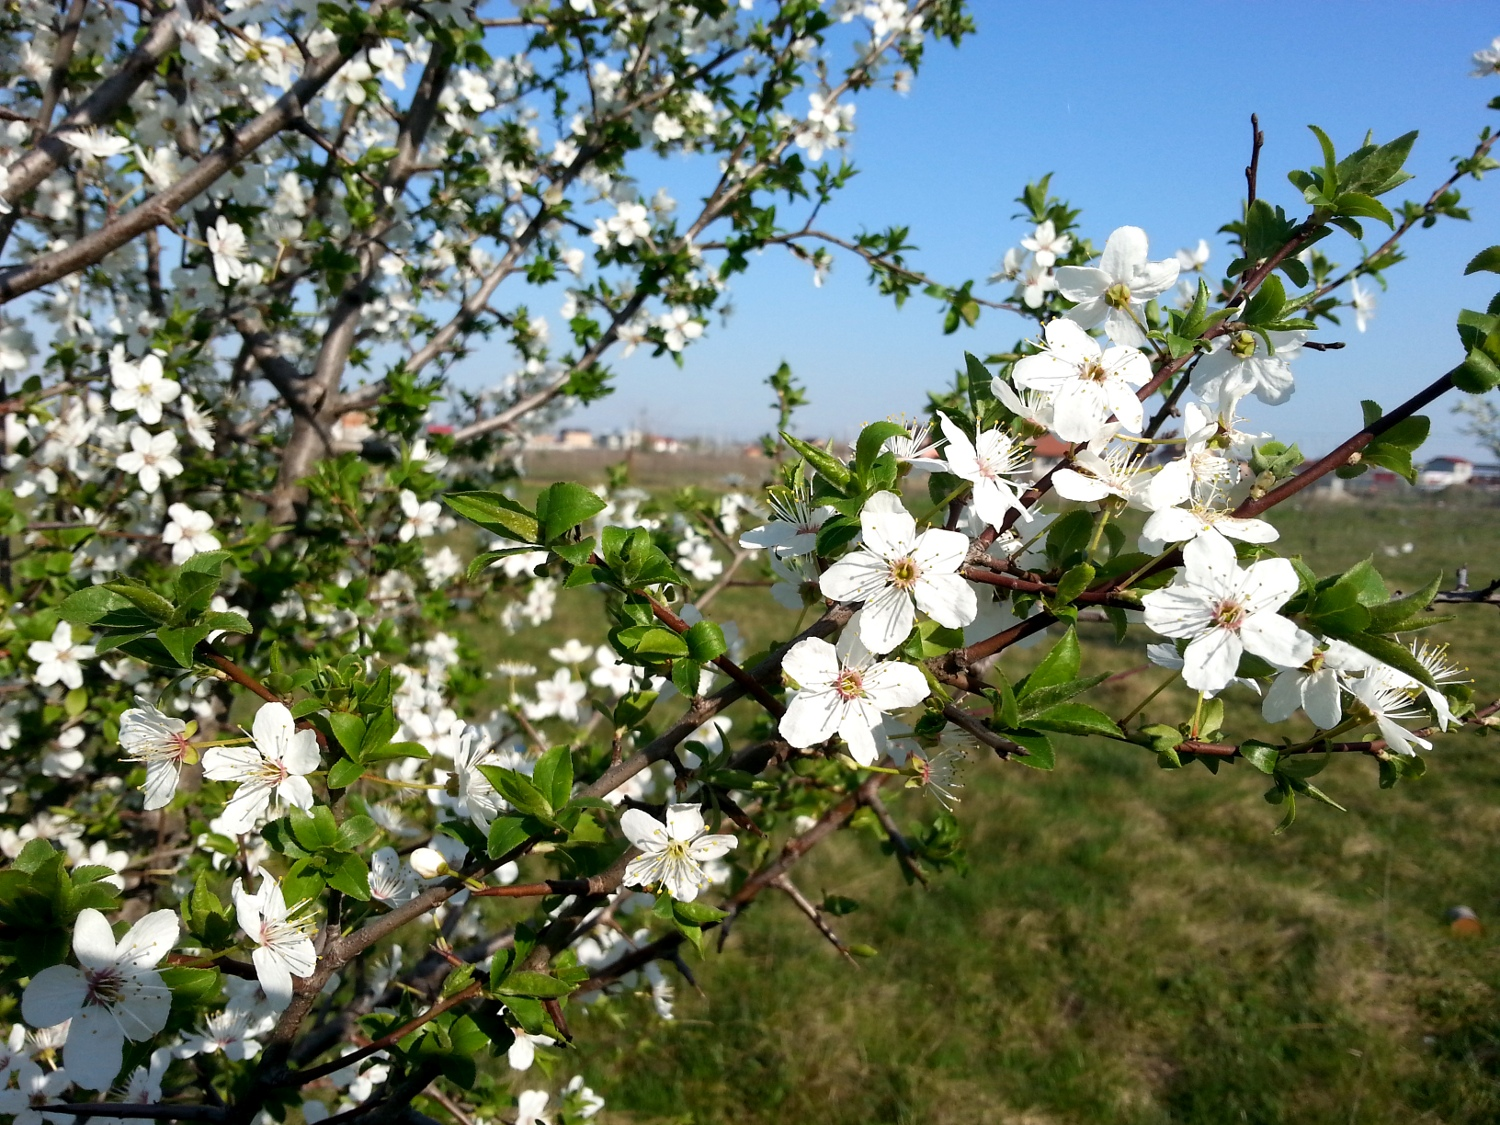 Spring blossoms: apricot tree, cherry blossom and others